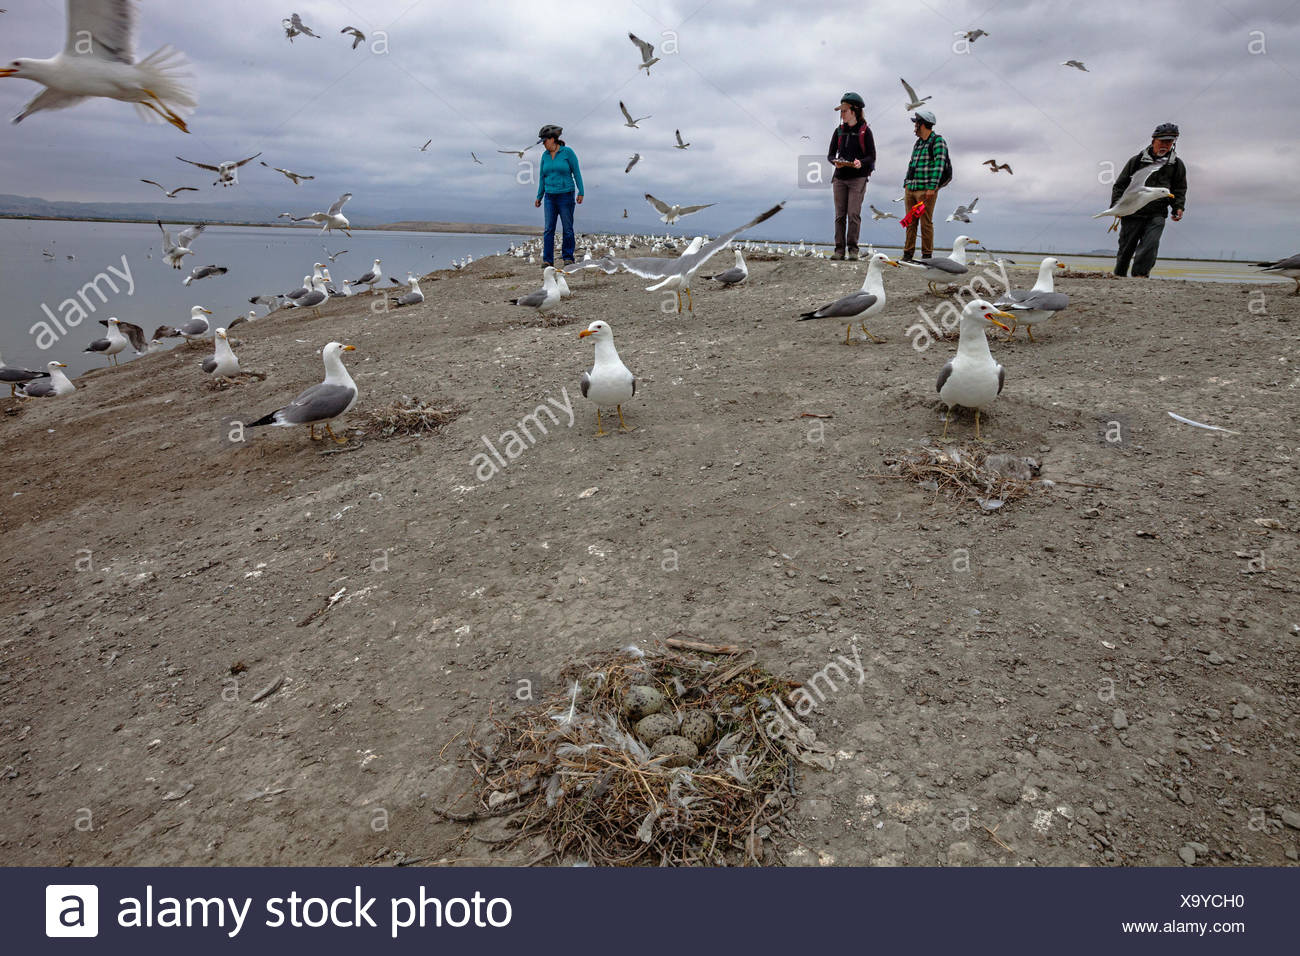 Members of San Francisco Bay Bird Observatory survey California Gull in South Bay restoration area near Aviso, California, USA - Stock Image